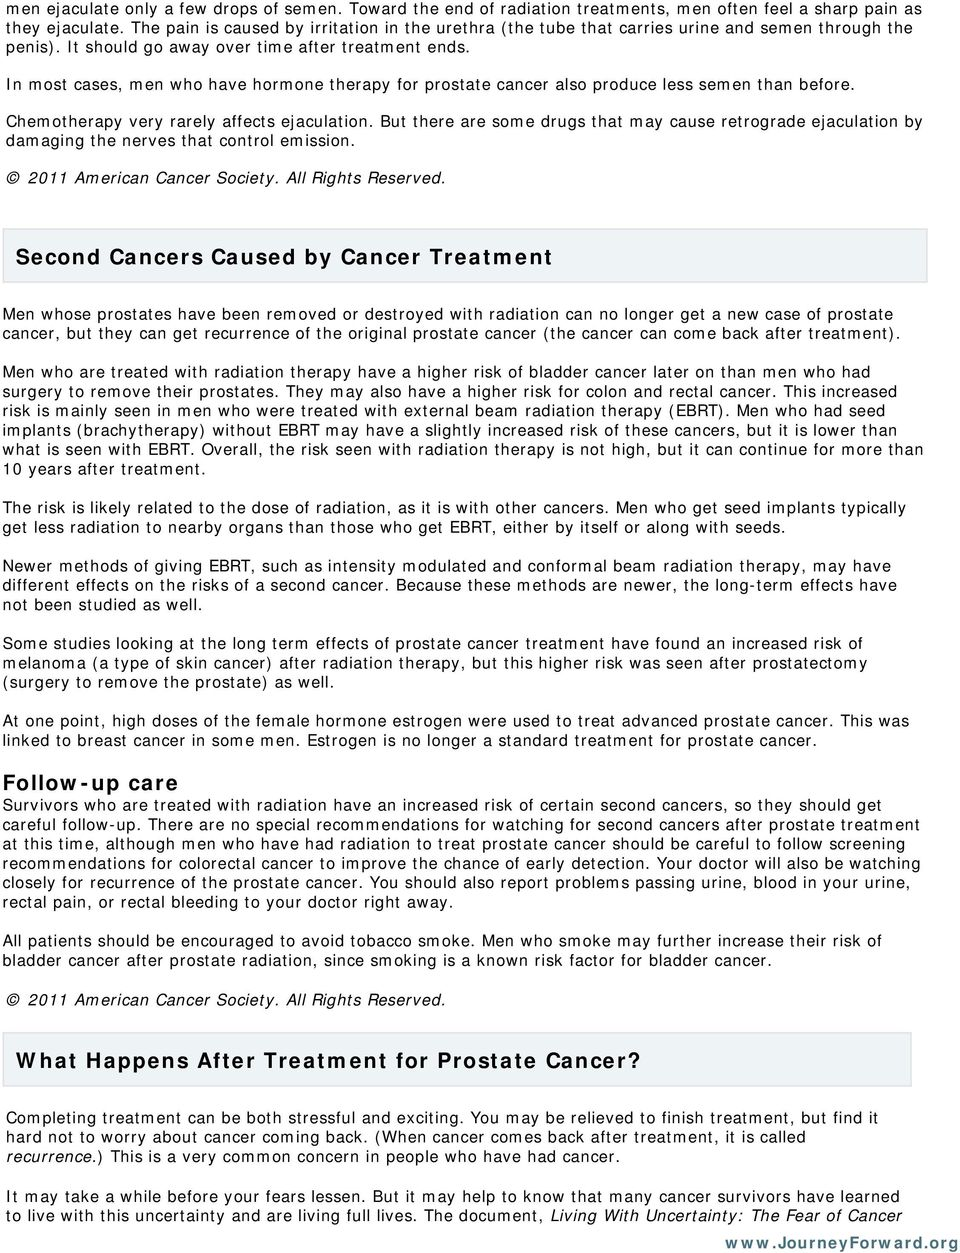 In most cases, men who have hormone therapy for prostate cancer also produce less semen than before. Chemotherapy very rarely affects ejaculation.